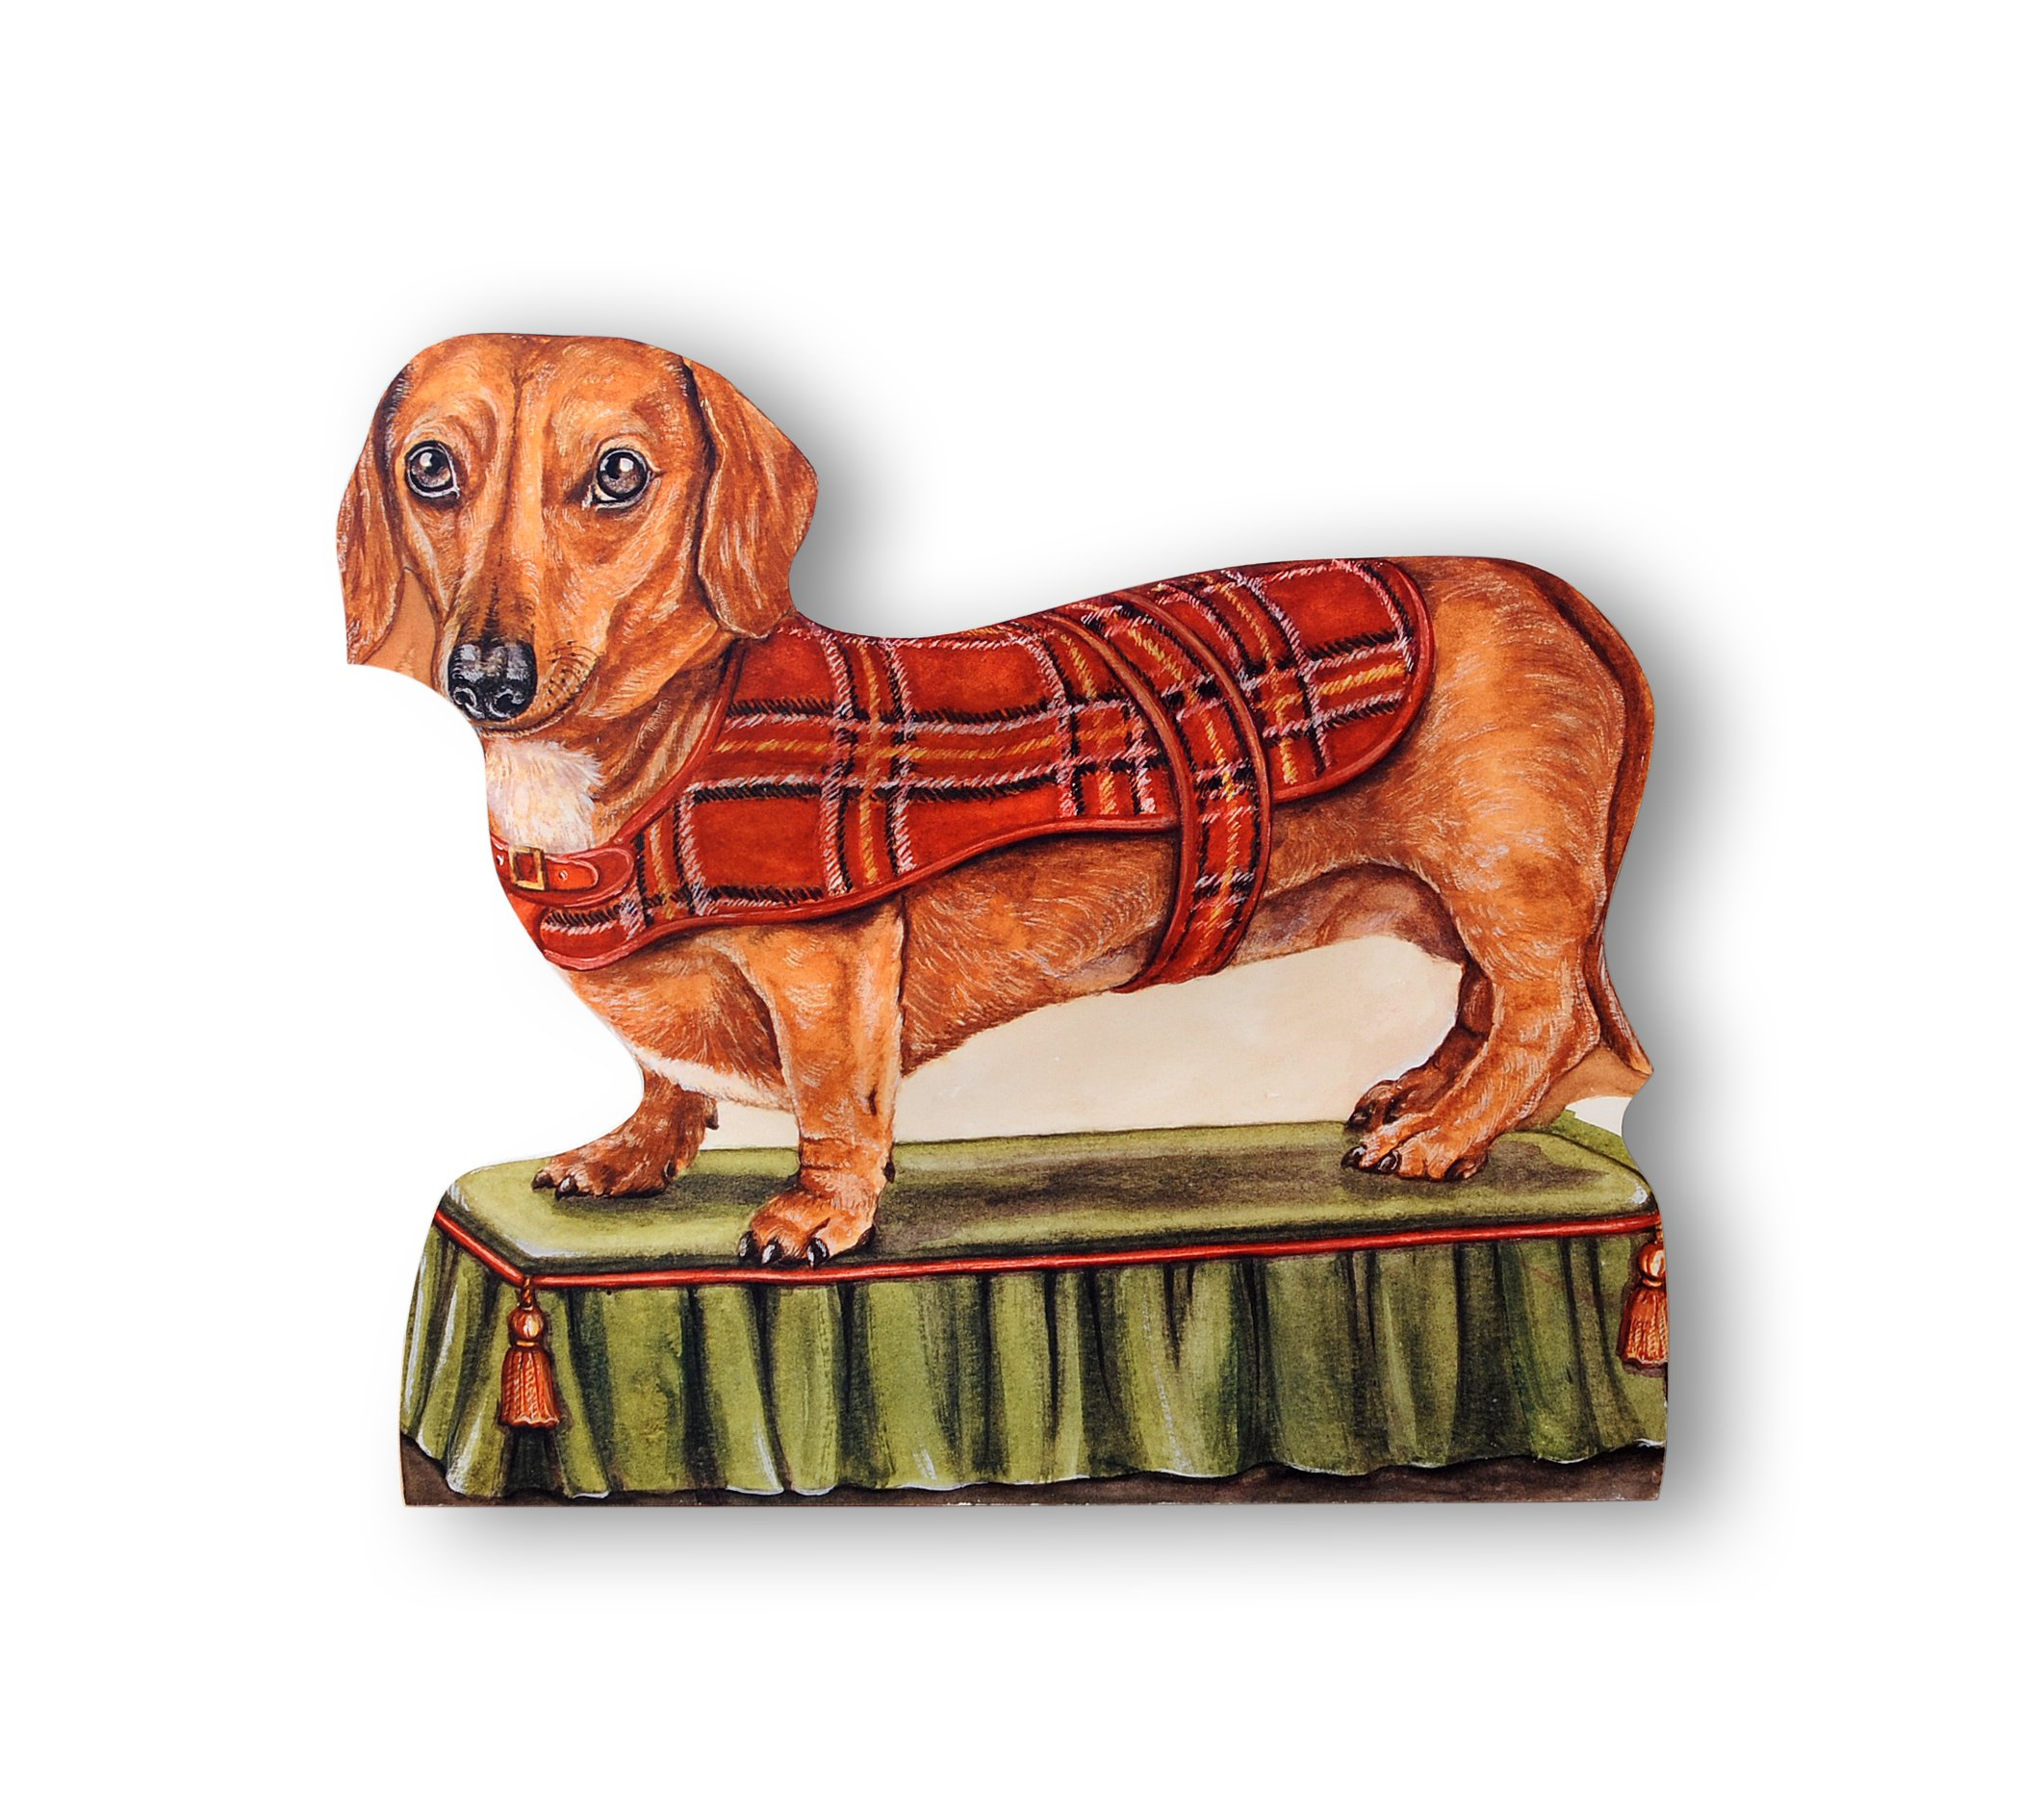 Stupell Home Décor Dachshund Decorative Dog Door Stop, 13 x 0.5 x 15, Proudly Made in USA